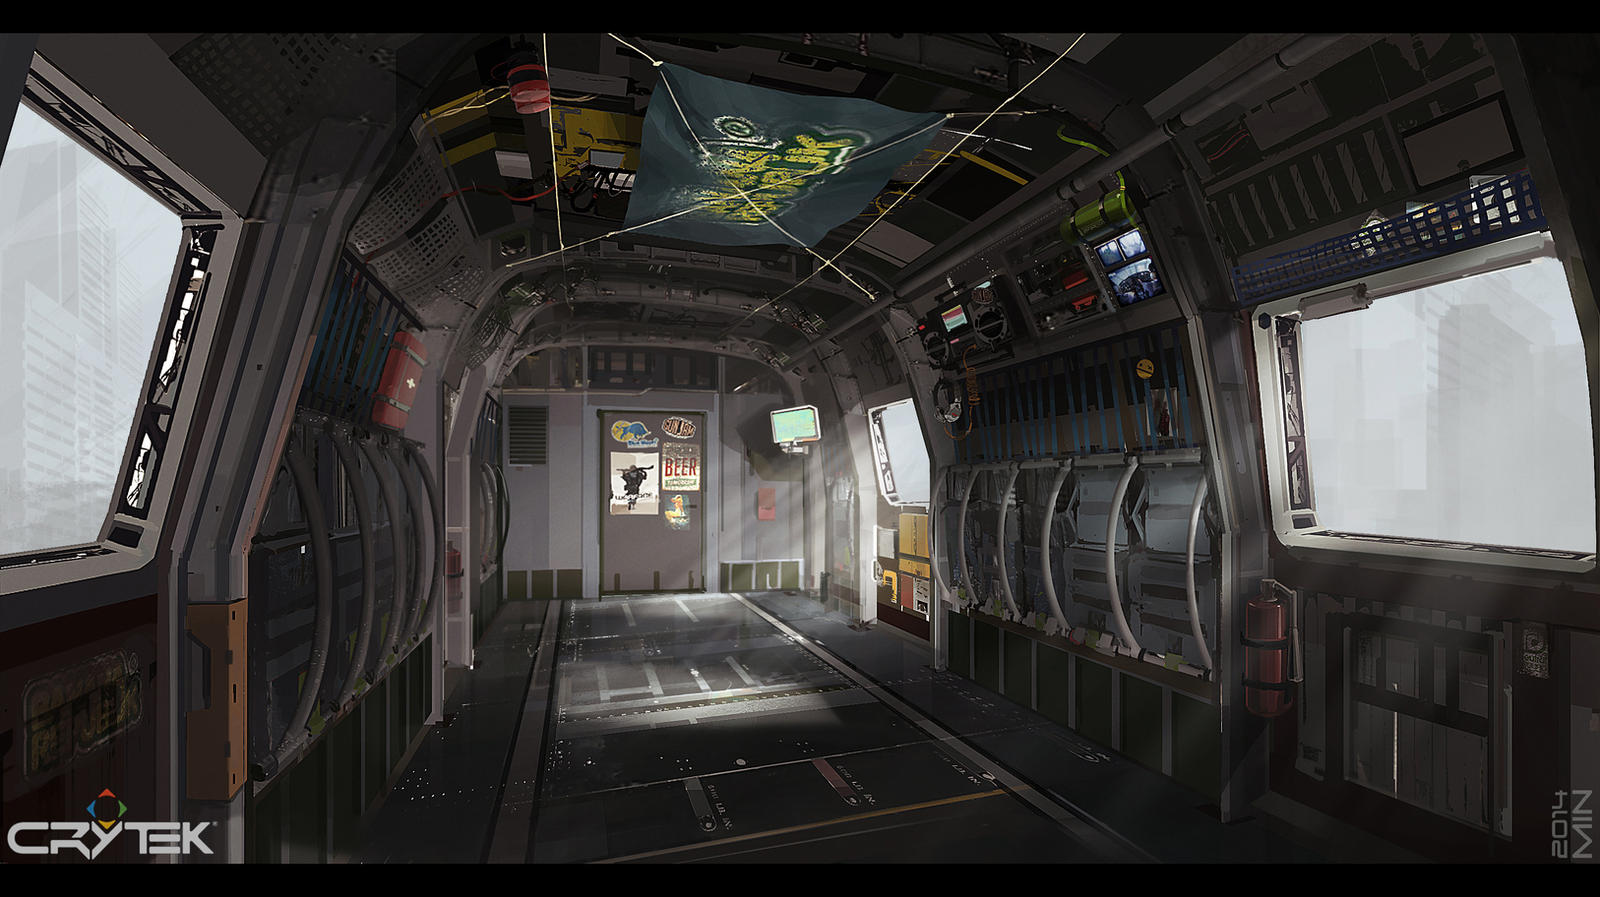 helicopter wallpaper with Chinook Interior 509541765 on Chinook Interior 509541765 as well Helicopter And Limousine besides Helicopter aircraft federal police highway Brazil also Art vertalet Mi 24 Soviet Russian transport military helicopter also Apocalypse now or platoon.